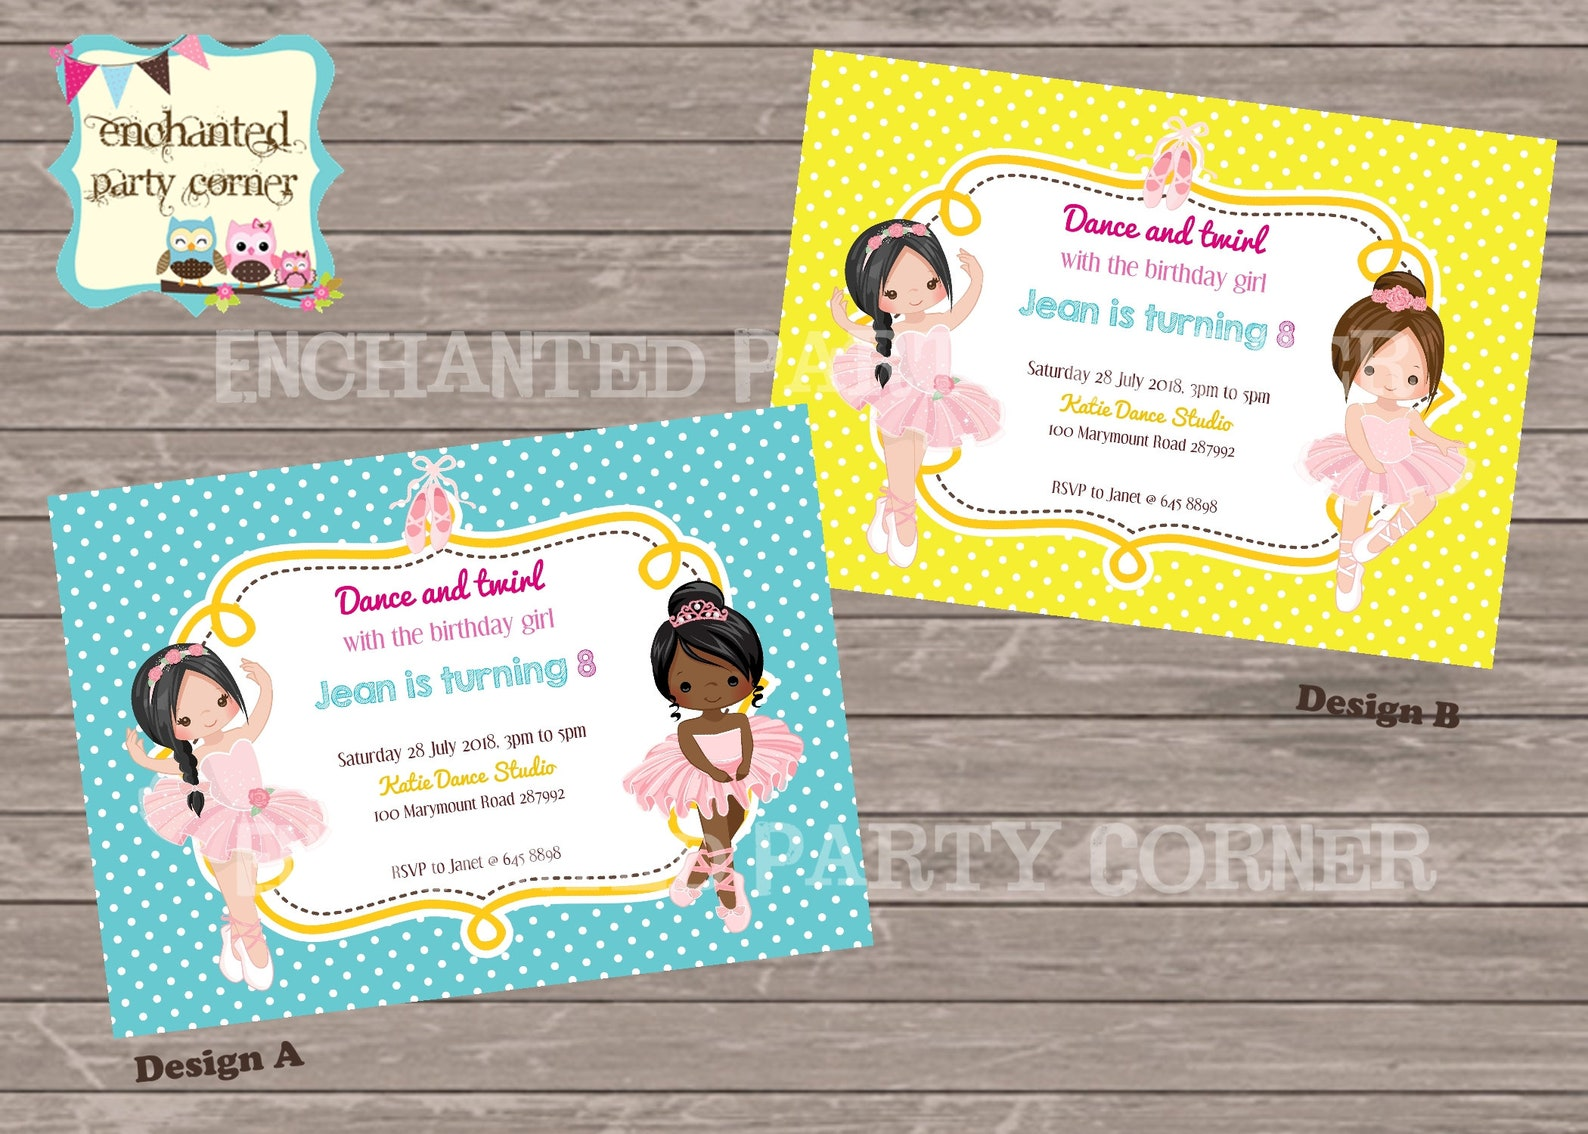 dance and twirl with the birthday invite for girls, ballet shoes, ballet invitation!